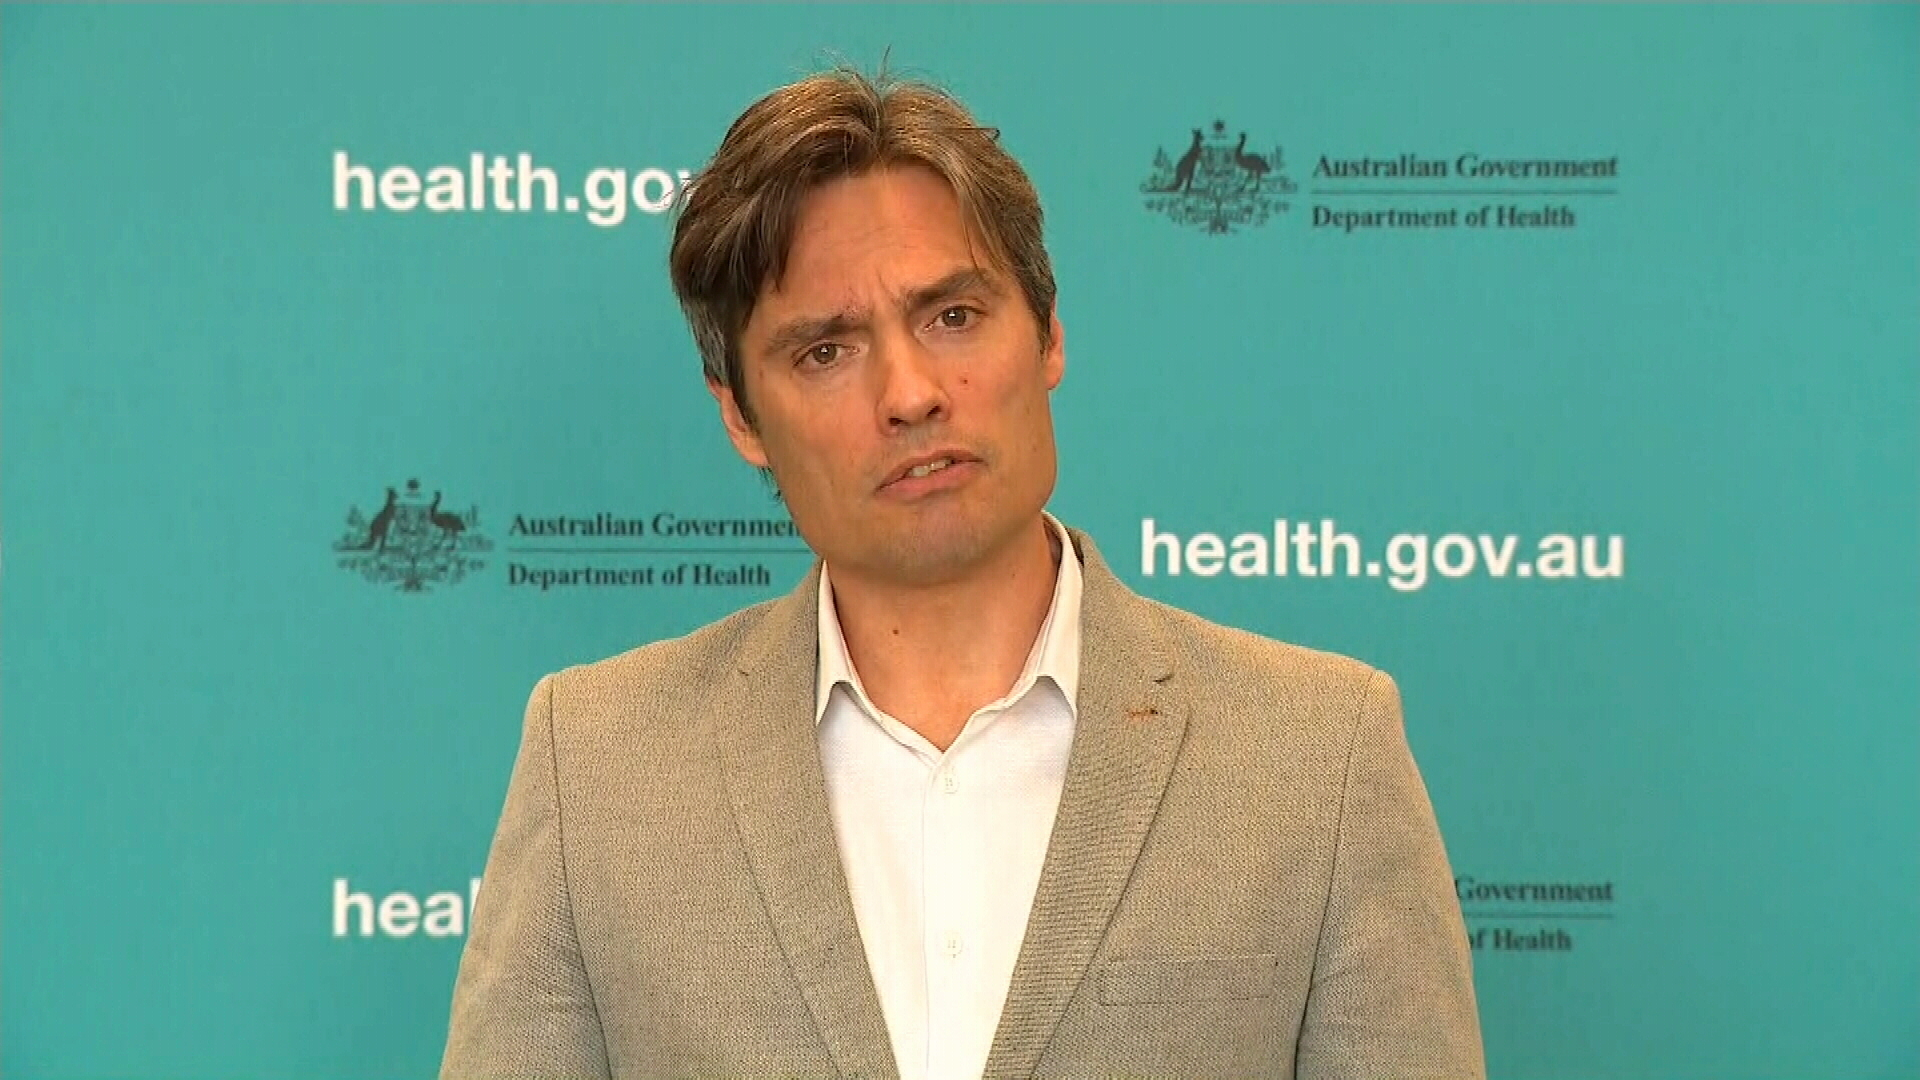 'Light at the end of the tunnel' close for Australia: Top doctor